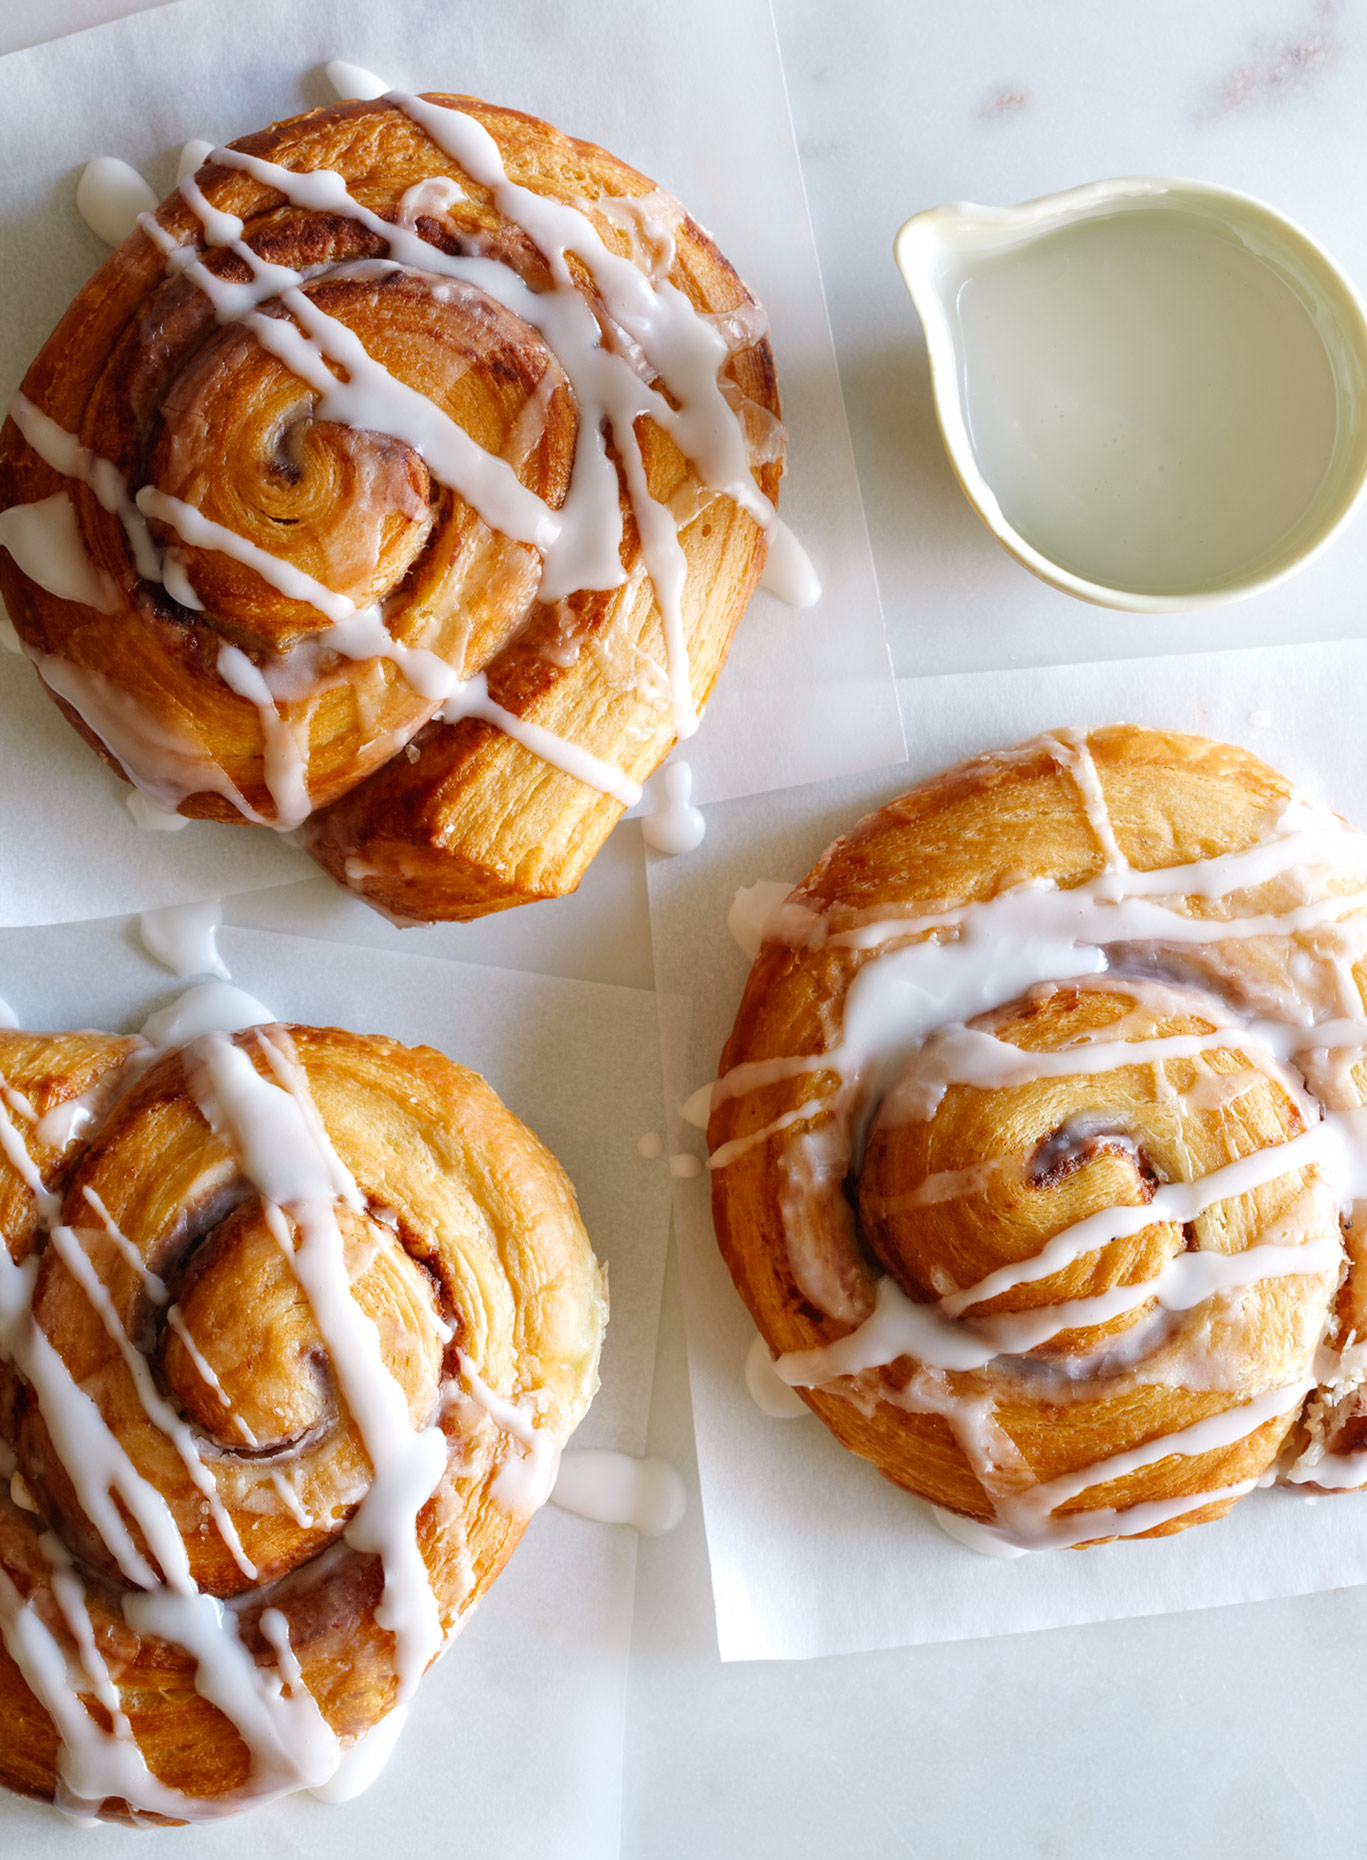 Cinnamon Buns photography - commercial food photographer Los Angeles